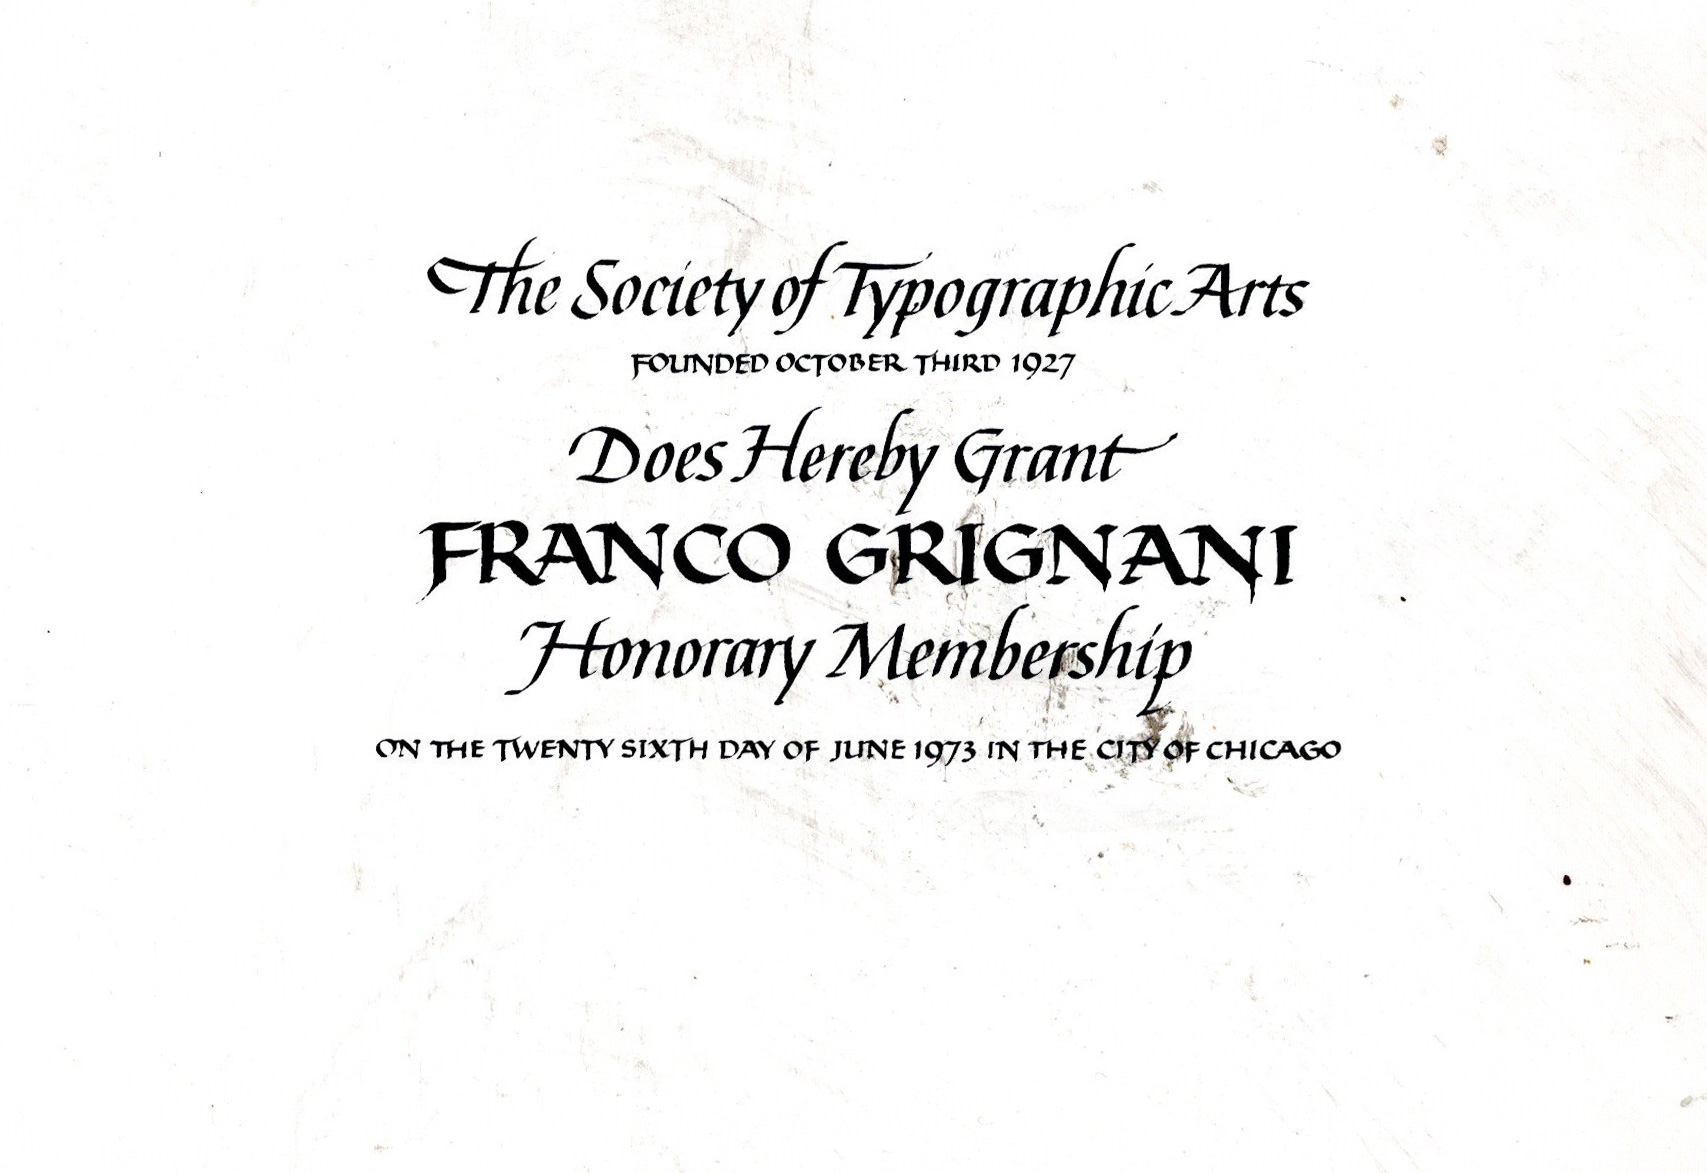 Franco Grignani, Honorary Member of the STA, 1973